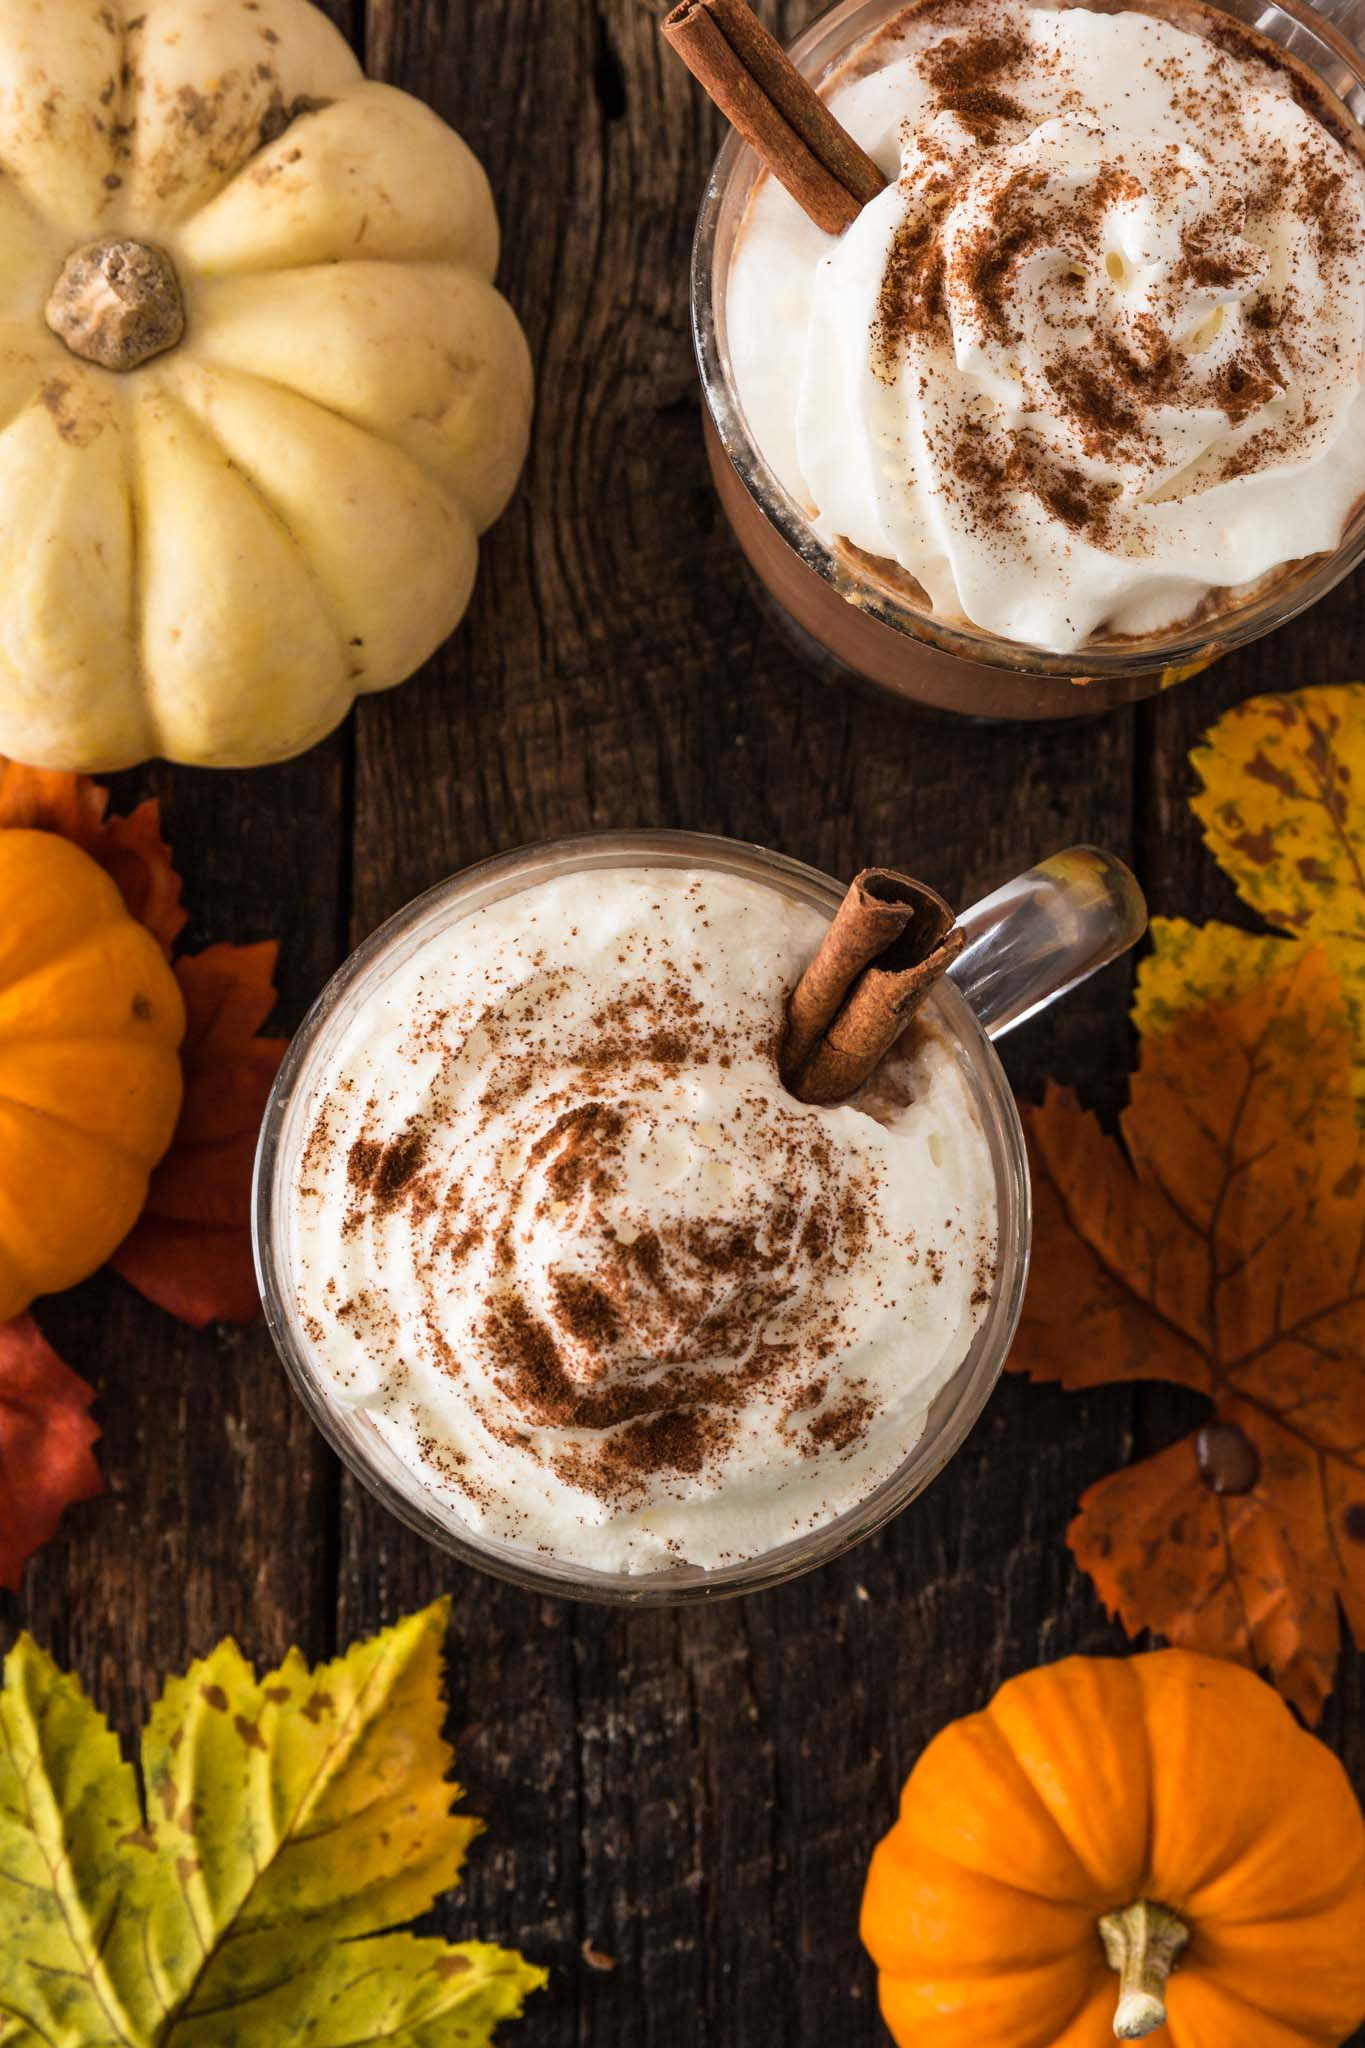 Pumpkin Spice Hot Chocolate | www.oliviascuisine.com | Creamy and extra rich, this Pumpkin Spice Hot Chocolate tastes like Fall in a cup. I can't think of a better way to celebrate the season! (Recipe and food photography by @oliviascuisine.)